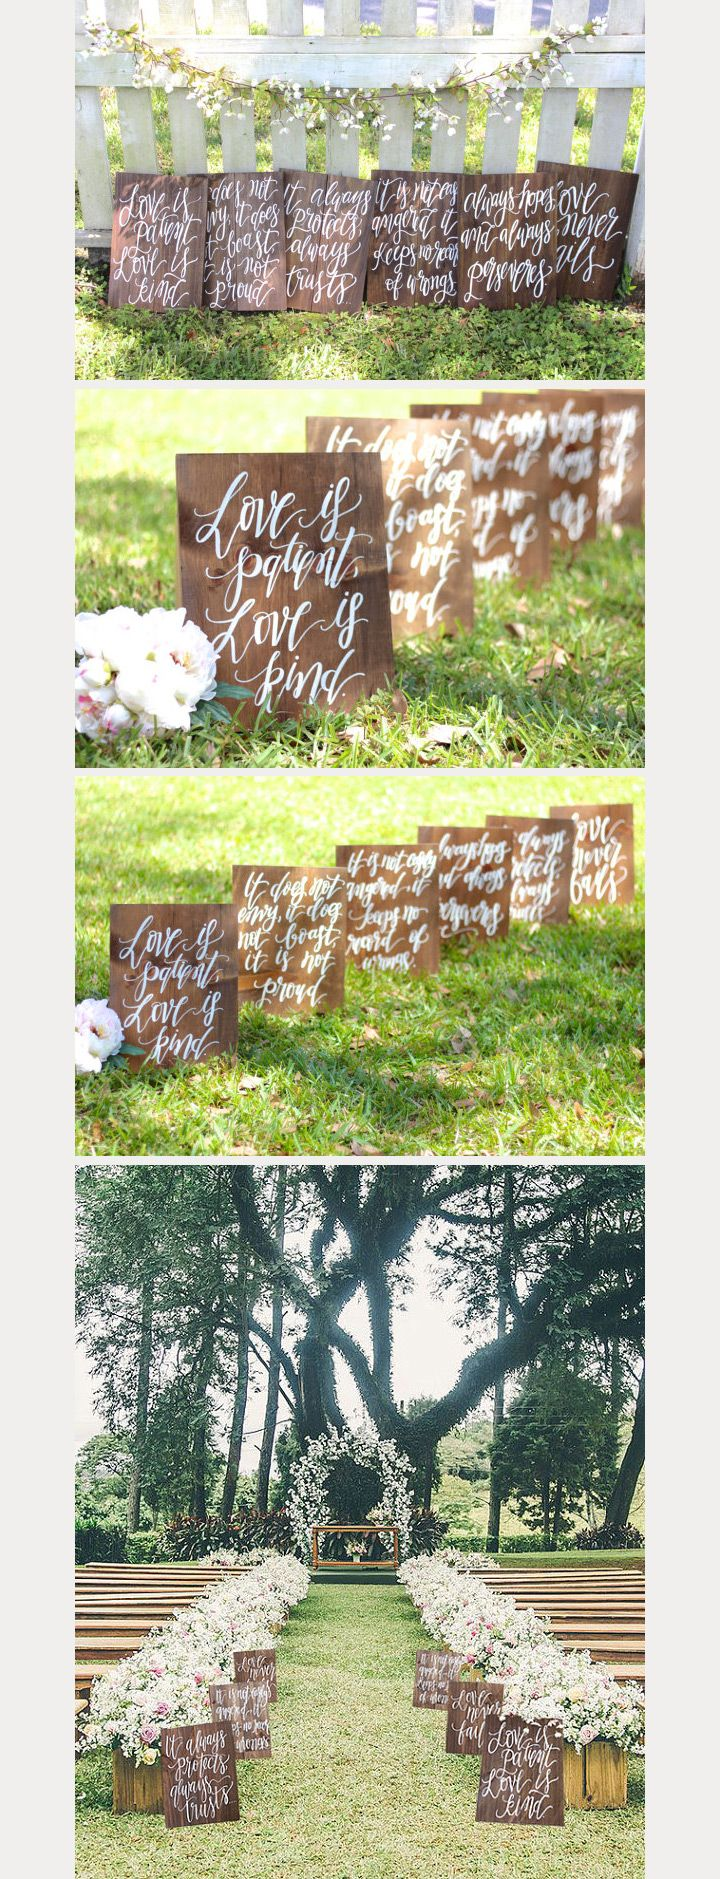 We've seen a lot of beautiful rustic wedding signs, but when we came across this photo of multiple signs all with parts of the 1 Corinthians 13 verses (which is very popular at weddings) lining the ceremony aisle, it stopped us in our tracks. Such a lovely idea created by Mulberry Market Design and the possibilites …